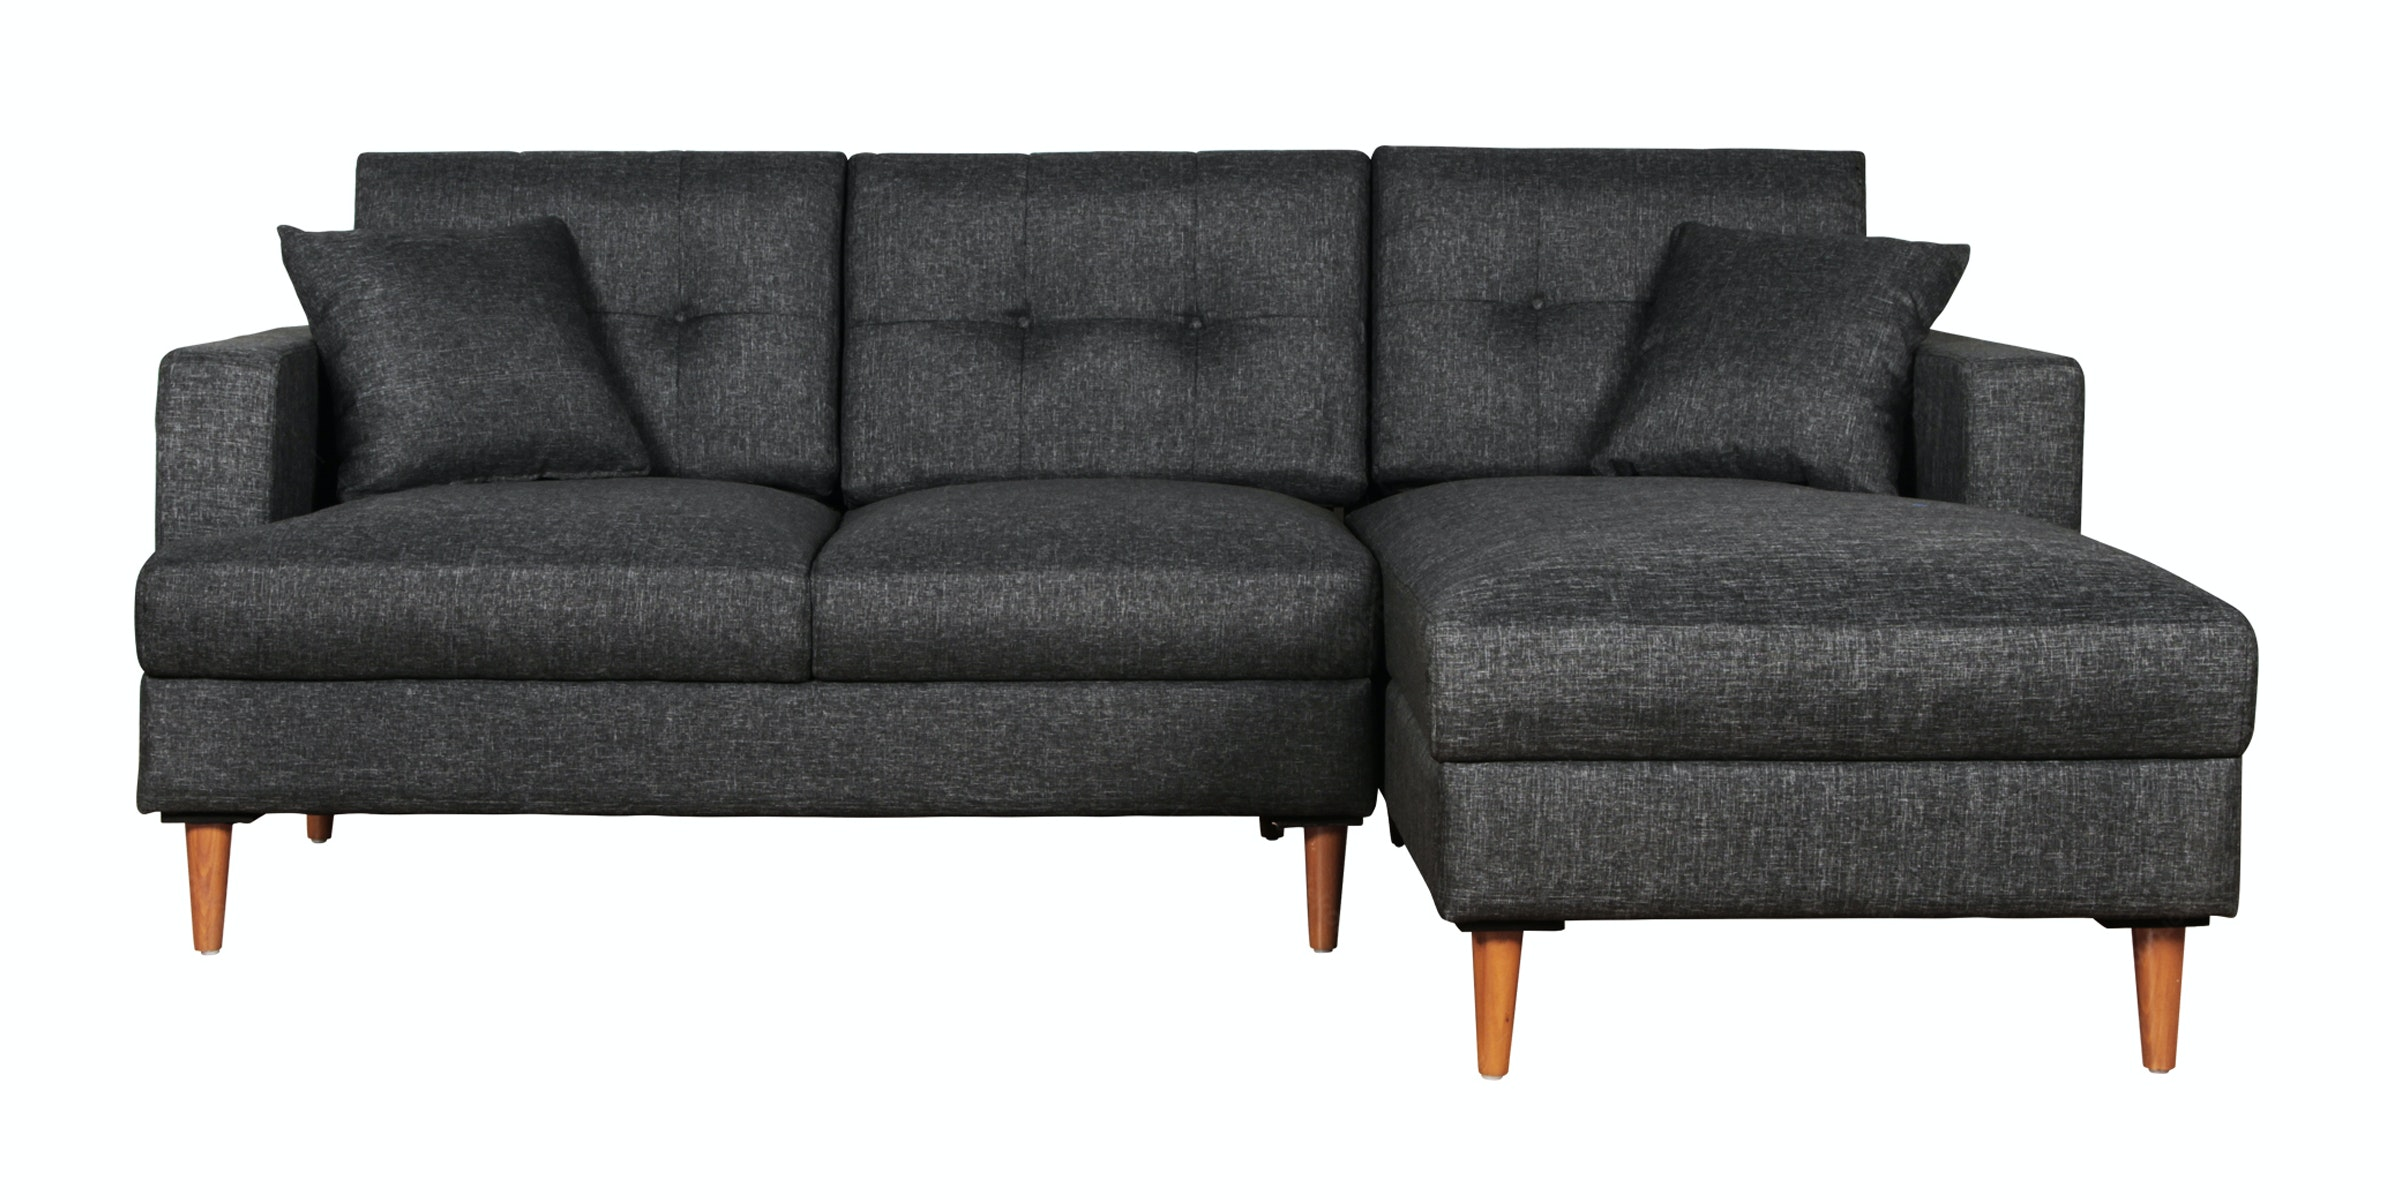 Voda Collection Helena Sofa L Hitam Raven Kiri